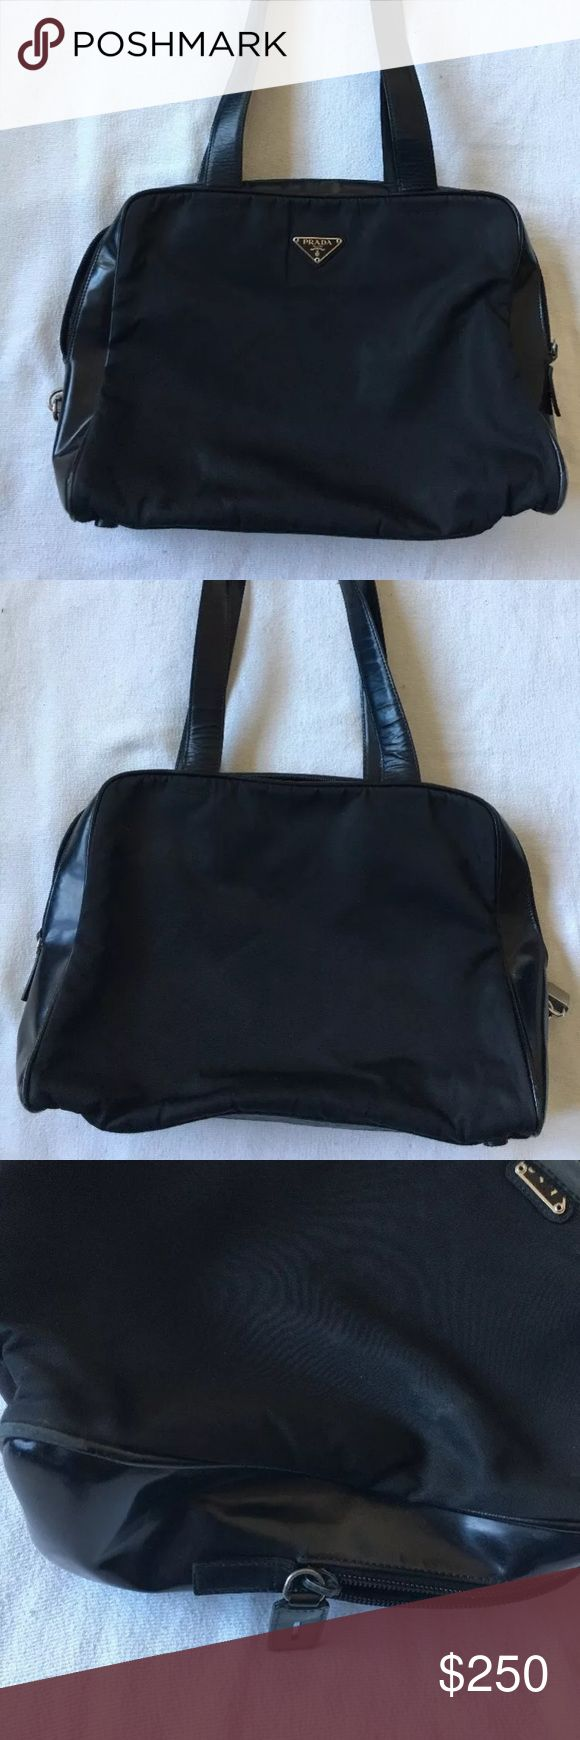 fcdcb2fdc29033 90e41 closeout 30744573456182616051bd095peof0wf8vsch prada black nylon  shoulder bag this is a great bag for holding important items ...